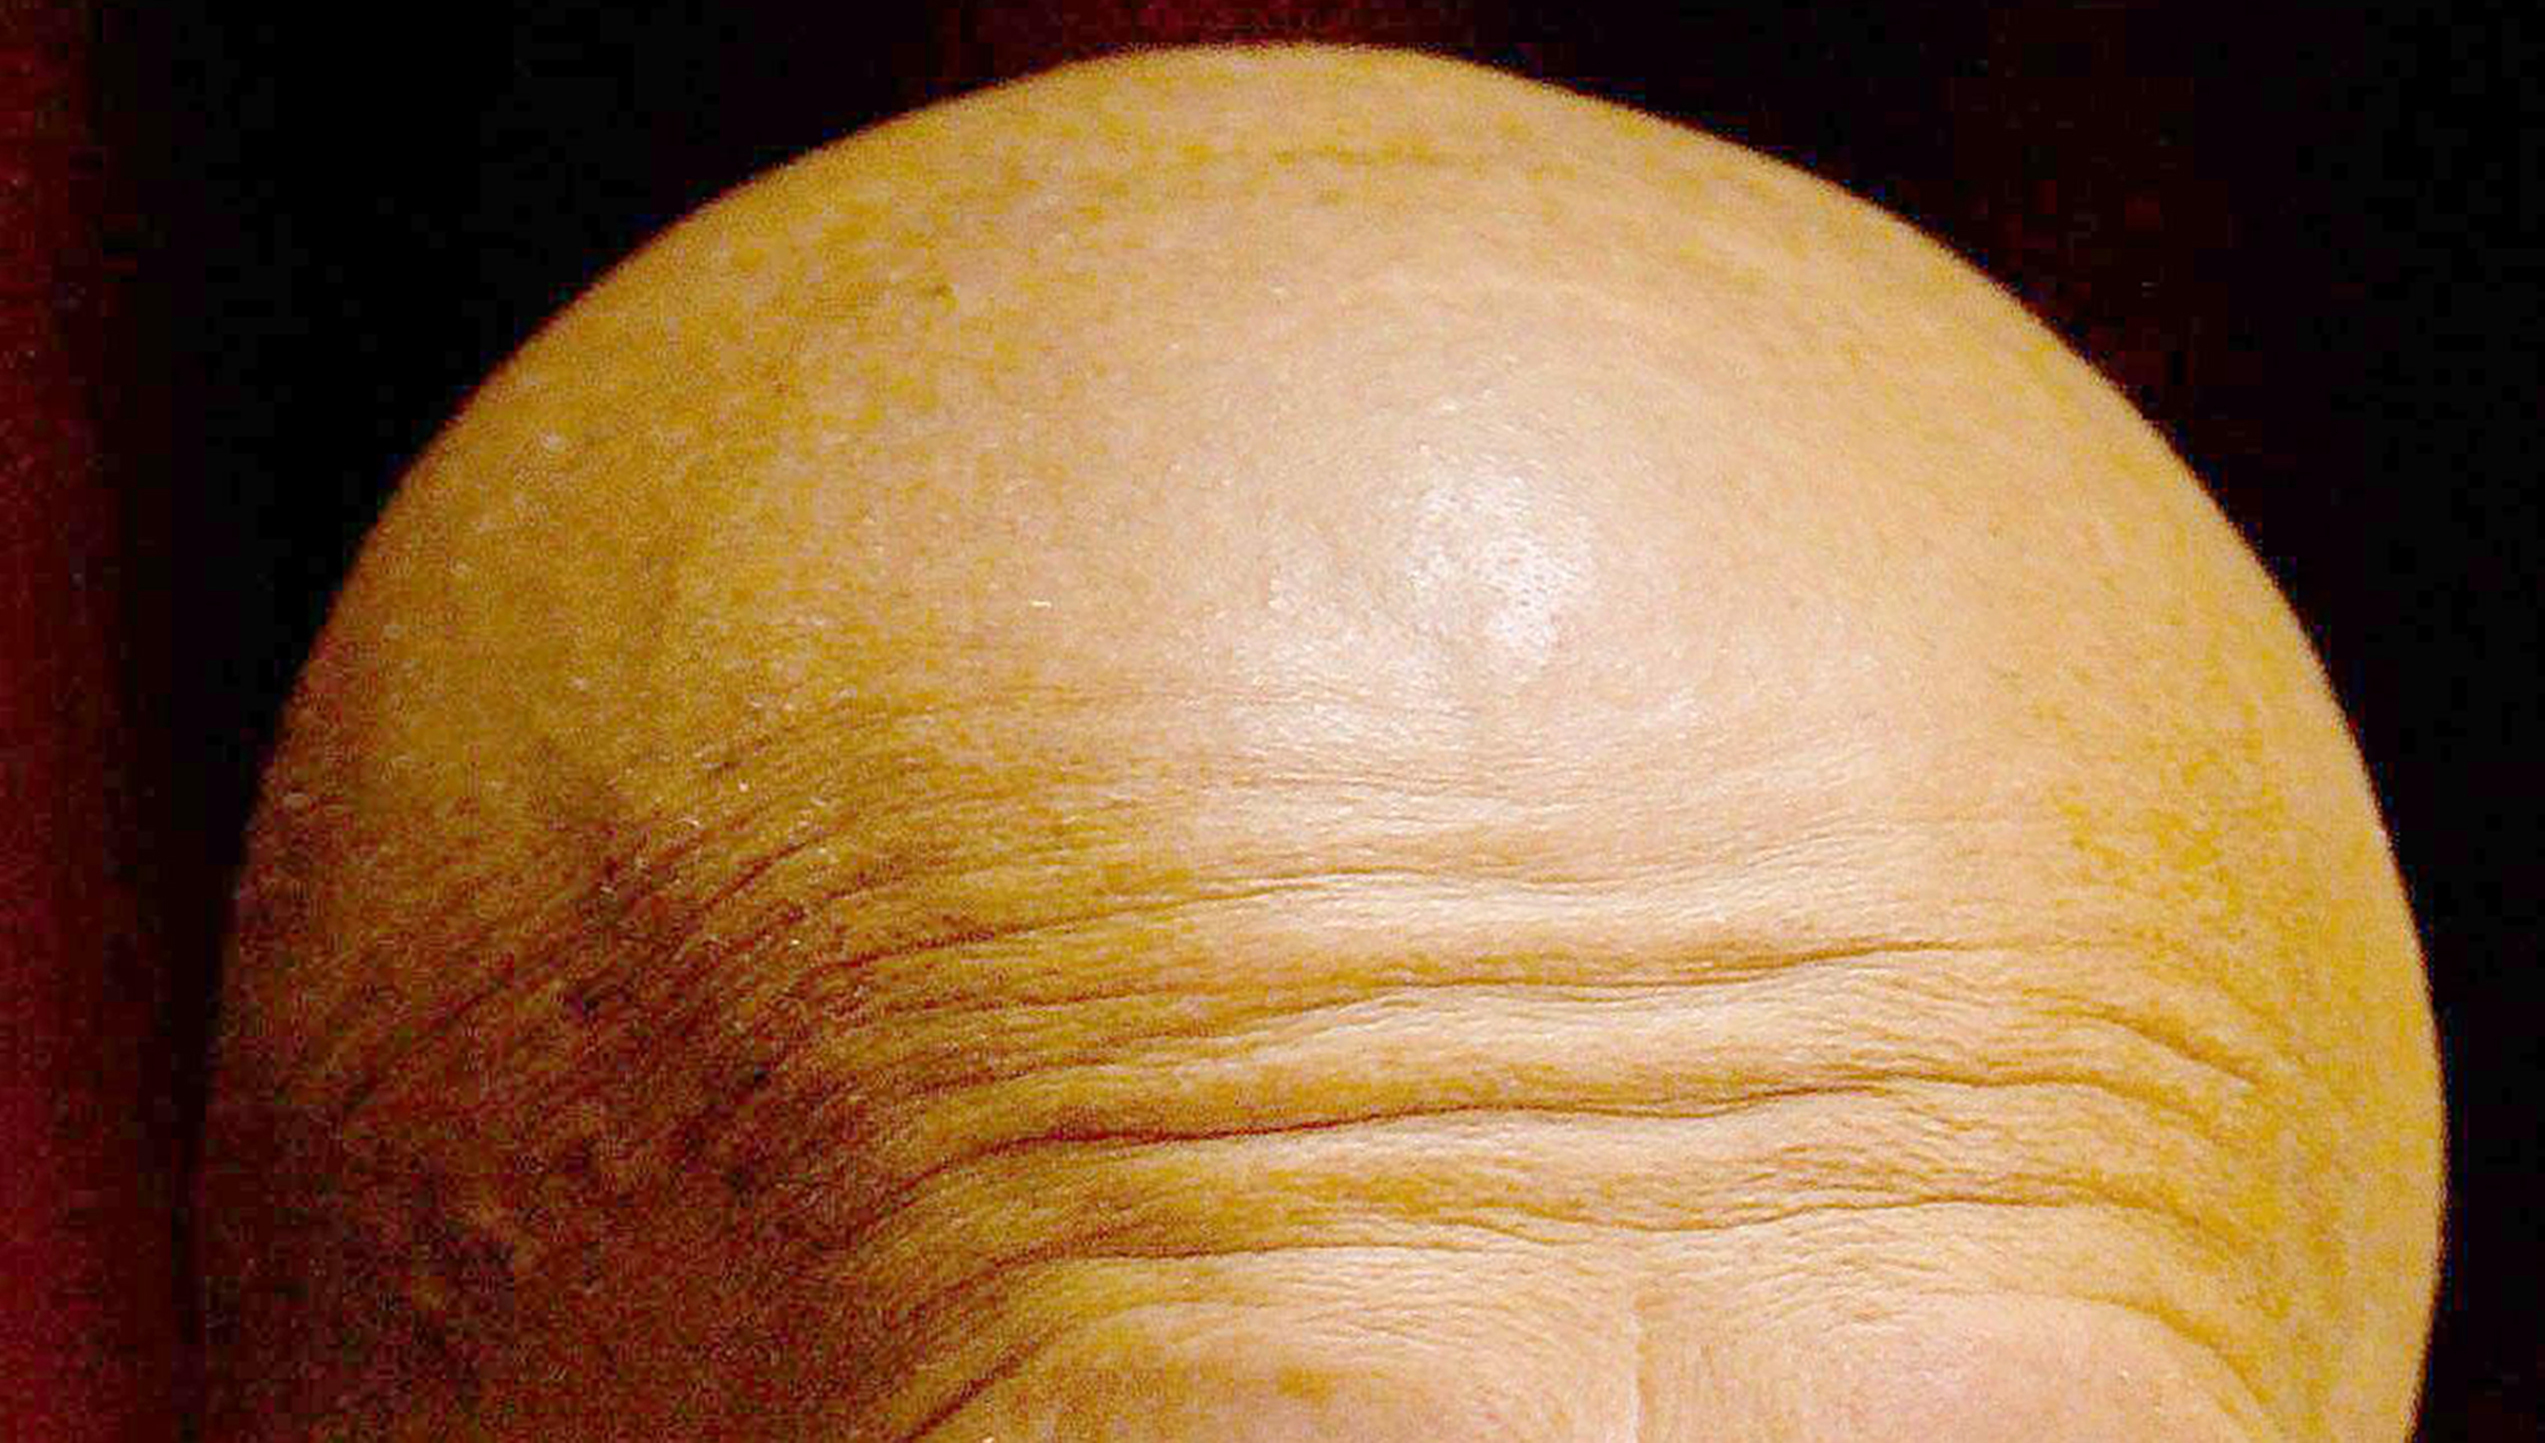 Treatment For Baldness With 'Enormous Potential' Found By Scientists